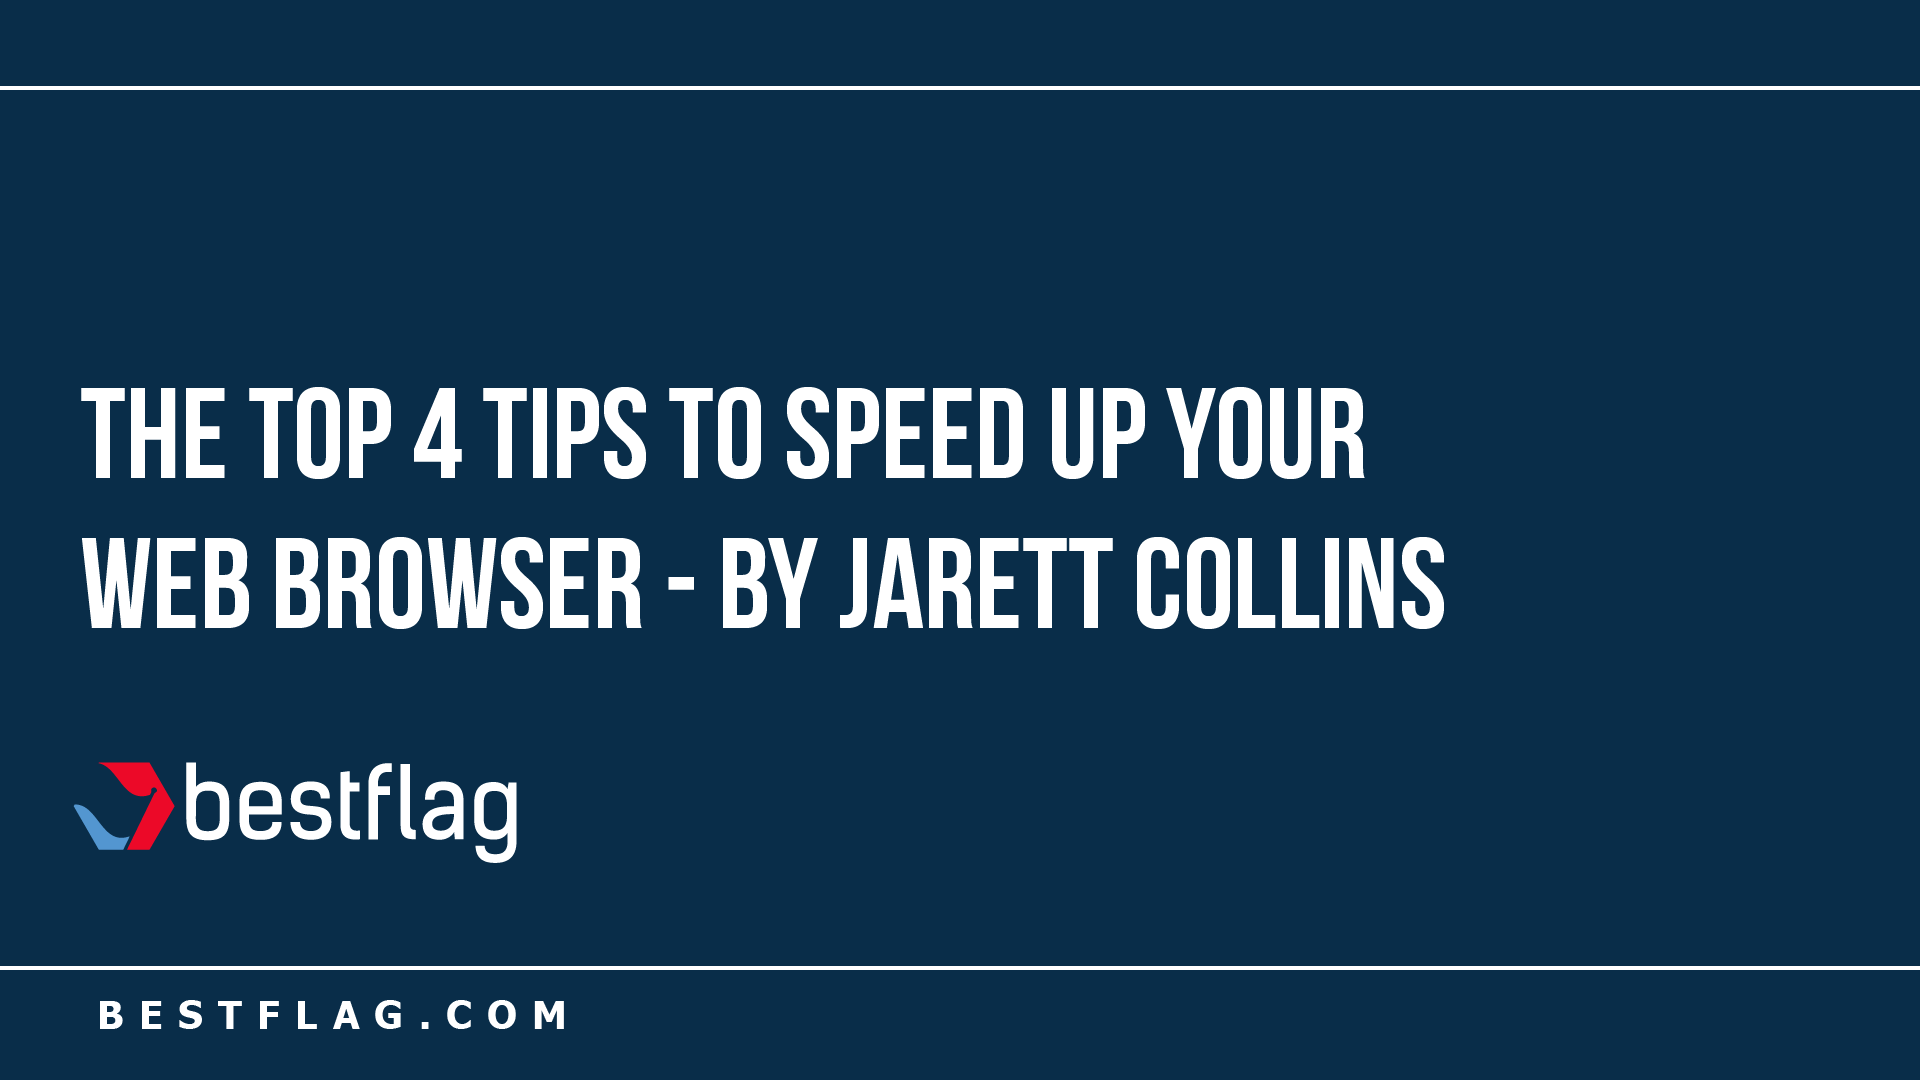 Top 4 Tips to Speed Up Your Web Browser - by Jarett Collins